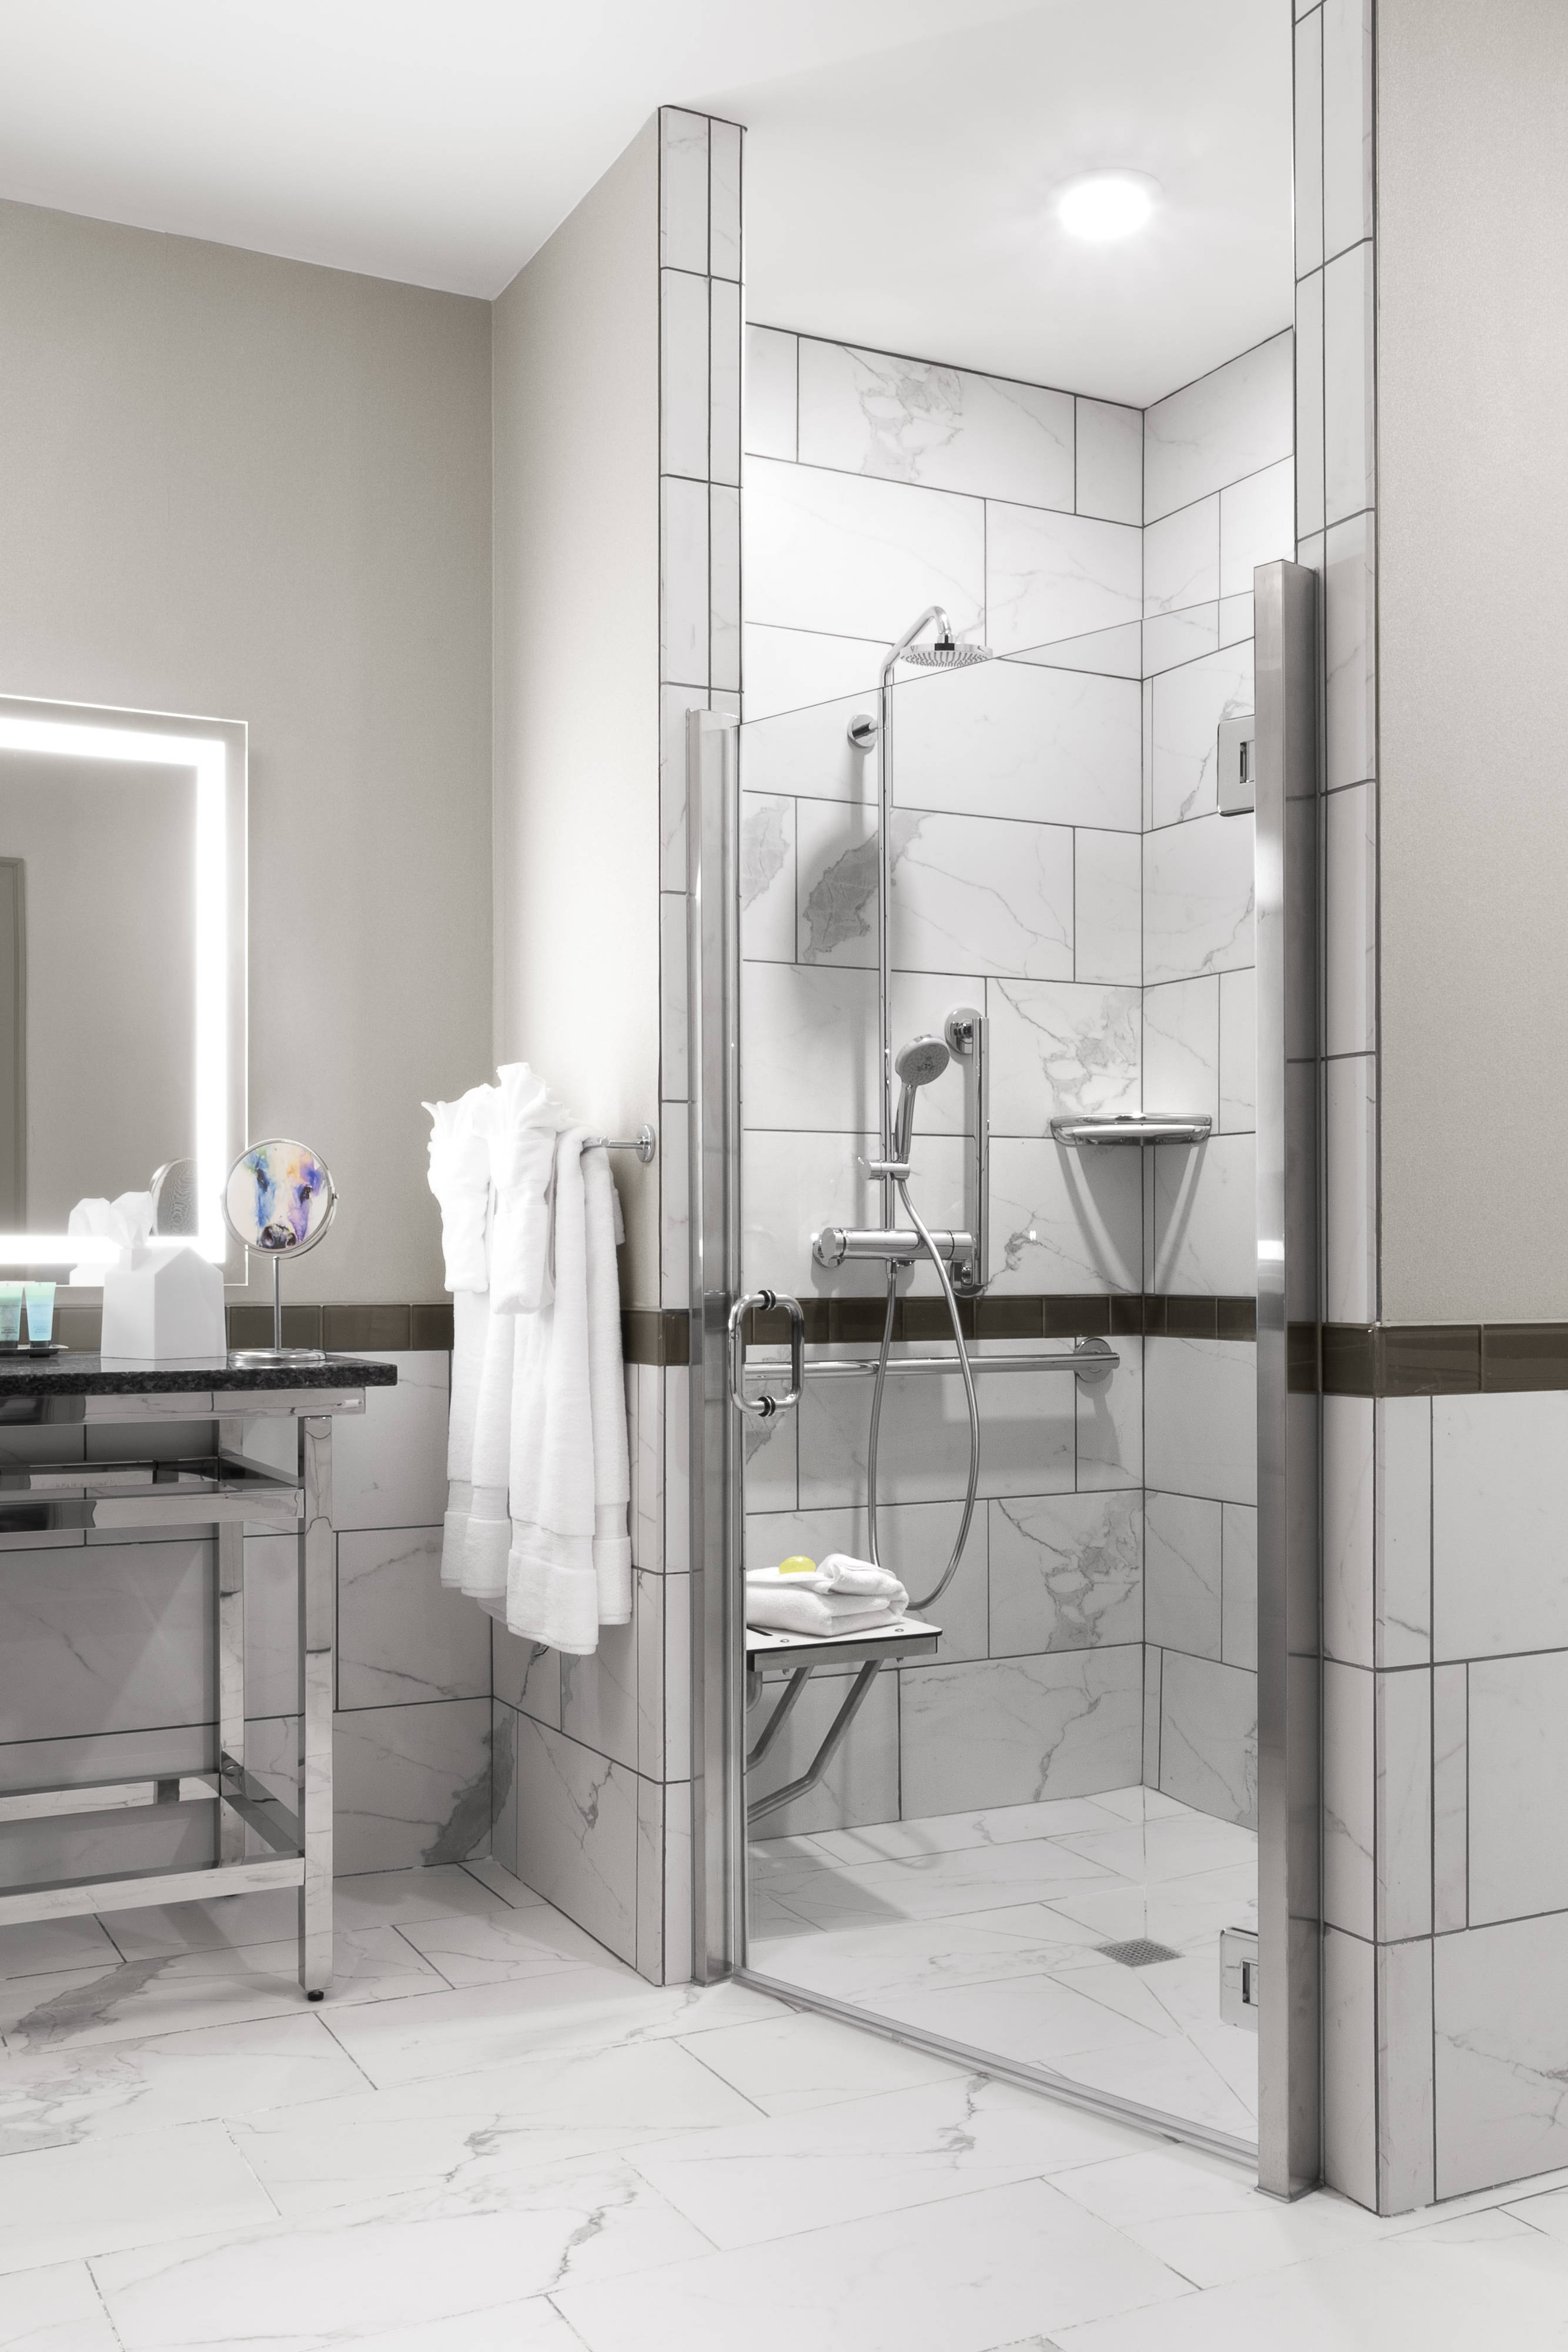 King Classic Room - Bathroom